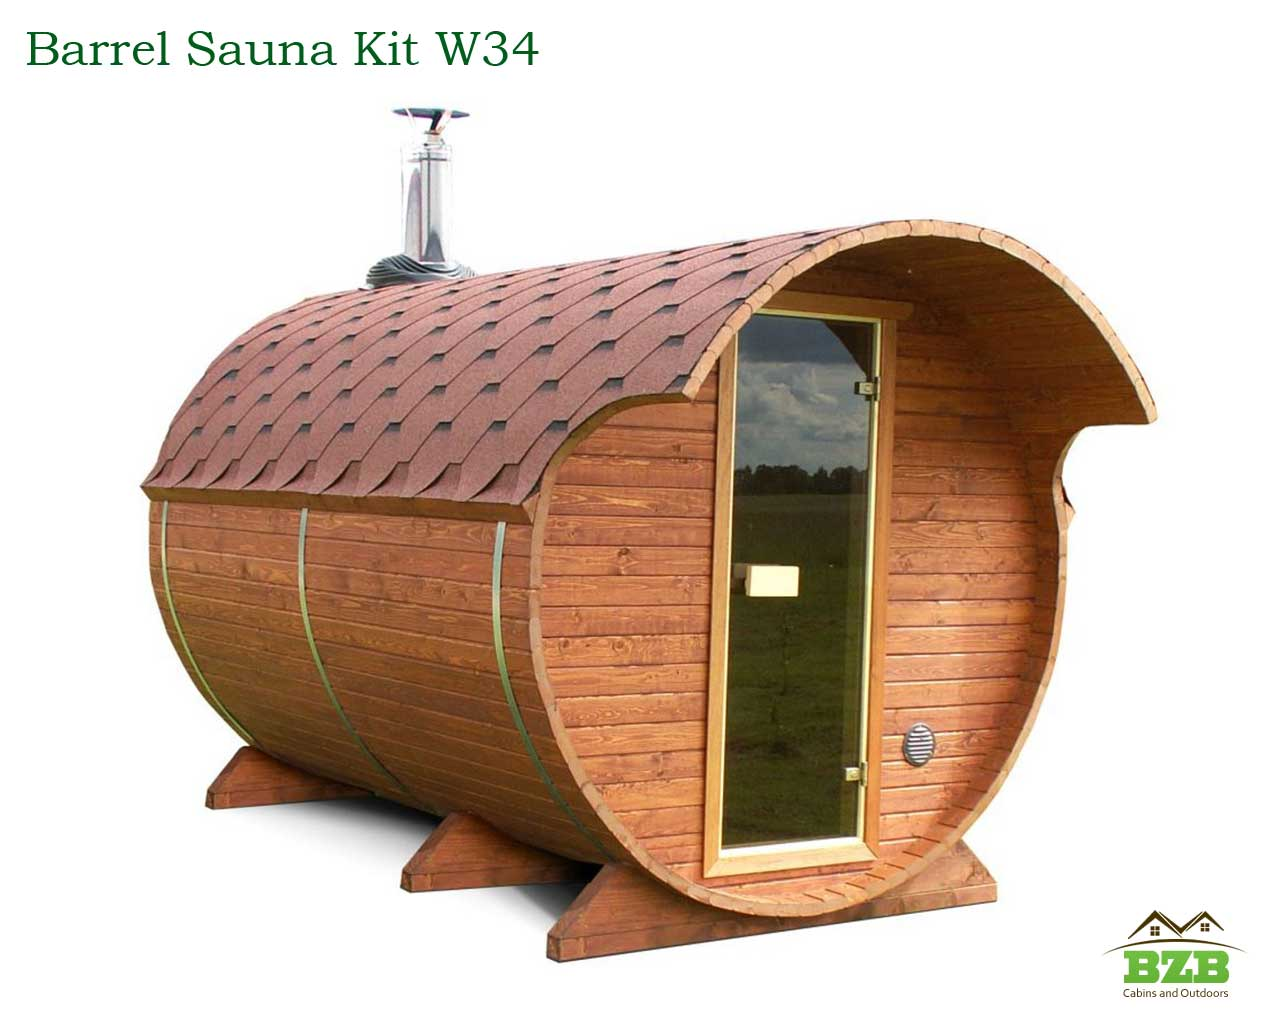 W34 Barrel Sauna Kit 2 Rooms Heater Included Bzb Cabins